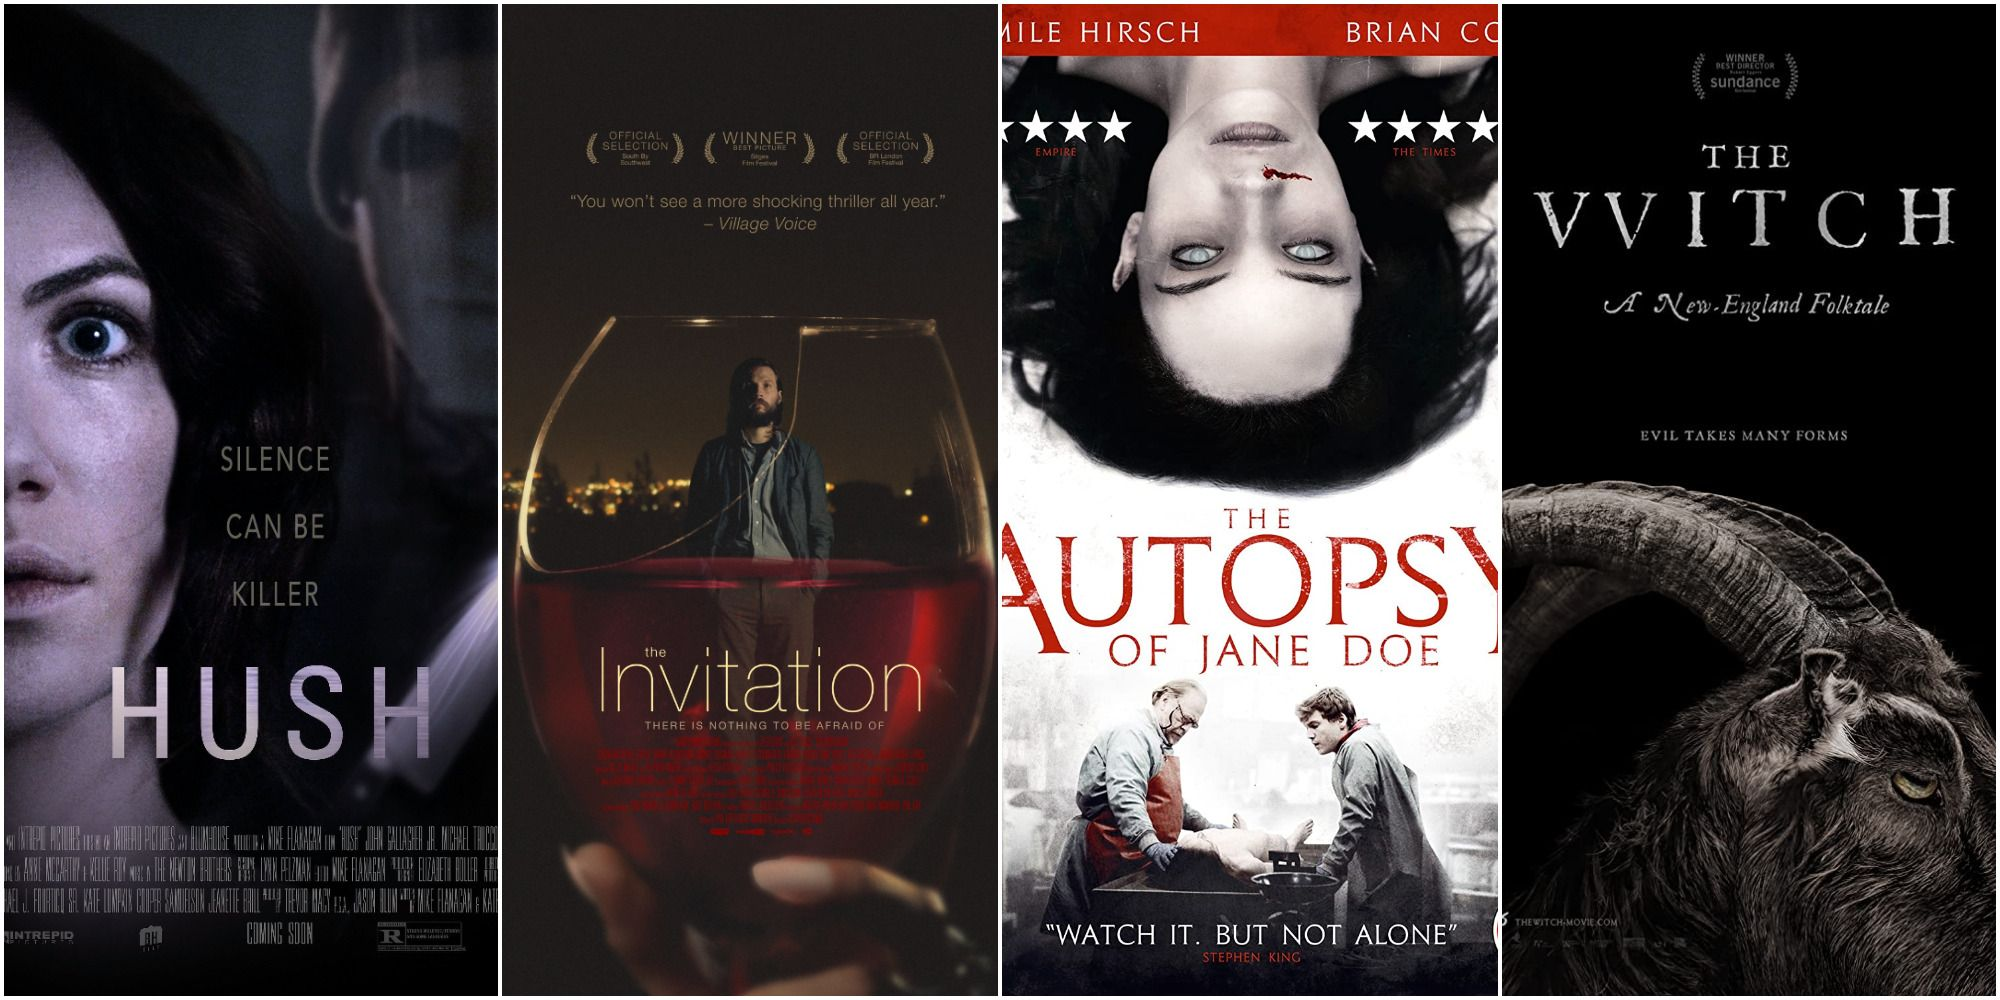 Top 3 Websites To Watch Movies For Free